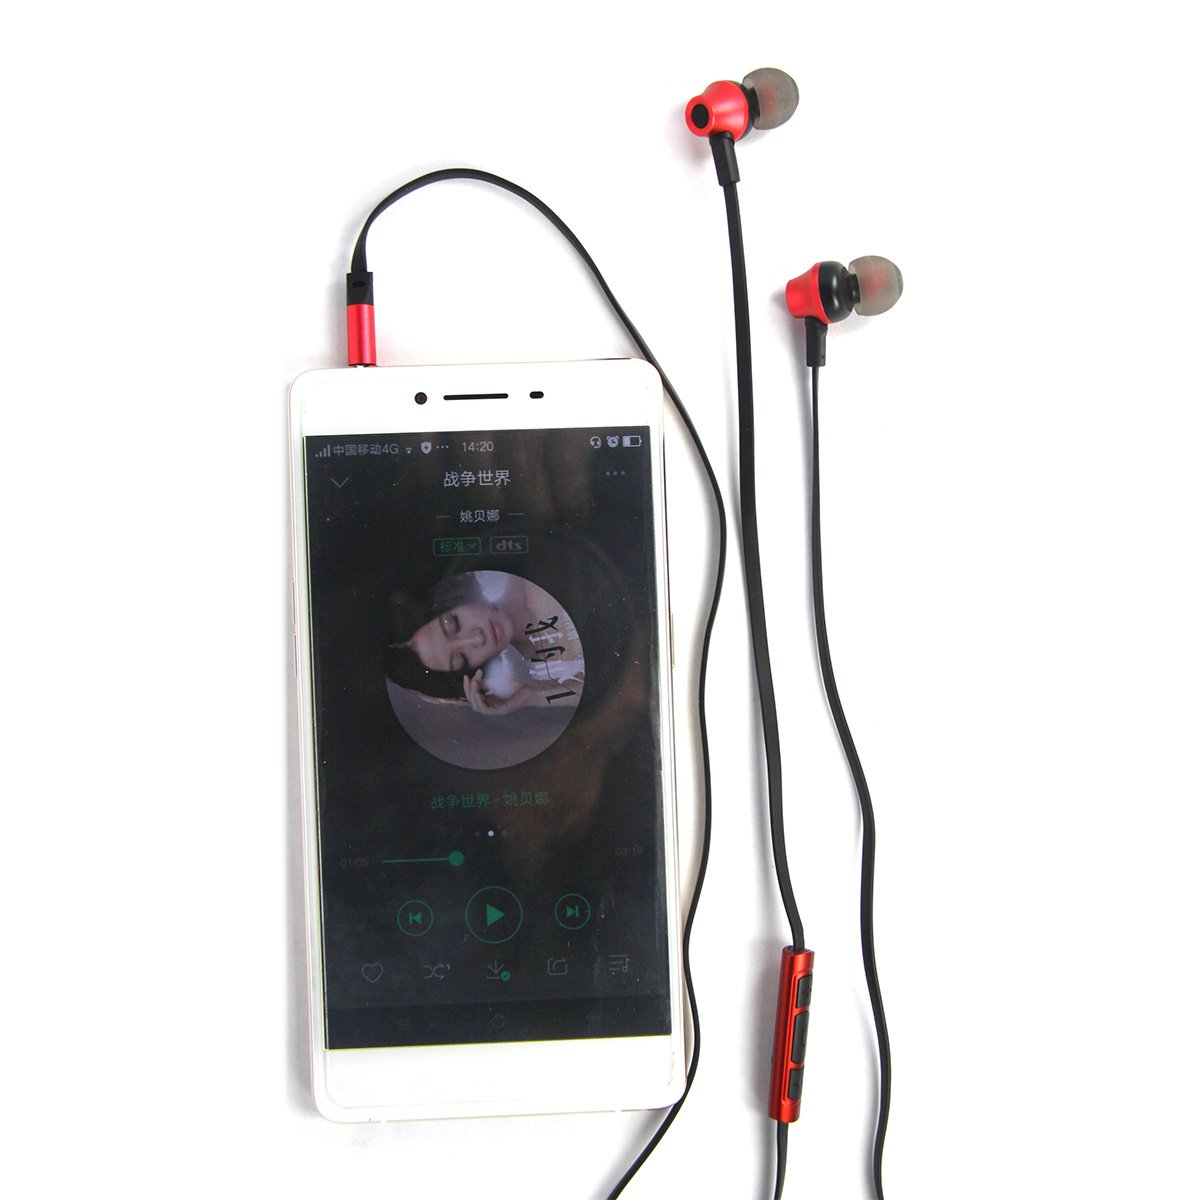 Stereo In Ear Headphone Rm 610d Noise Isolating Handsfree Earphone Remax 305m With Volume Control Original Electronics